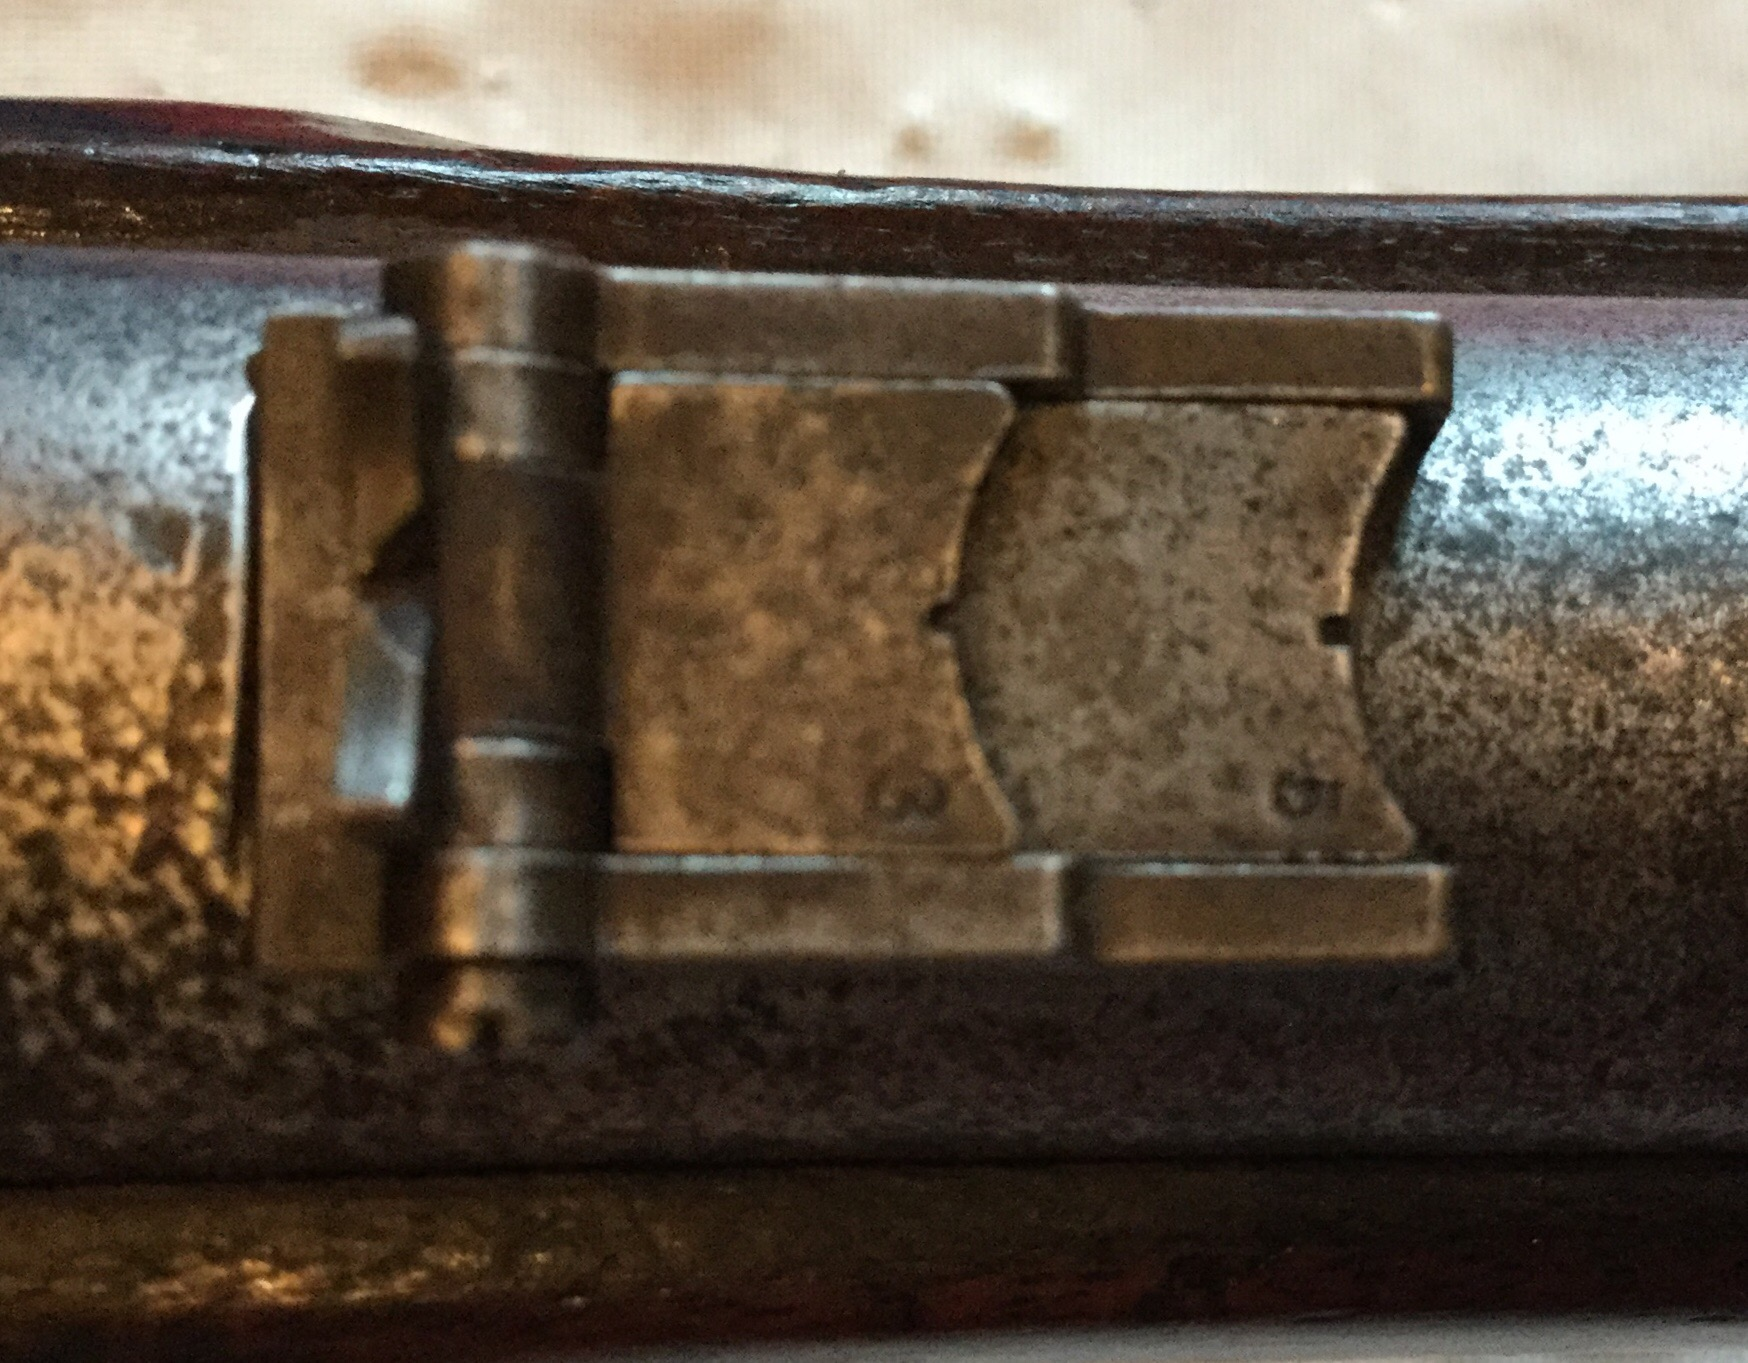 1863 Fayetteville Rifle Rear Sight